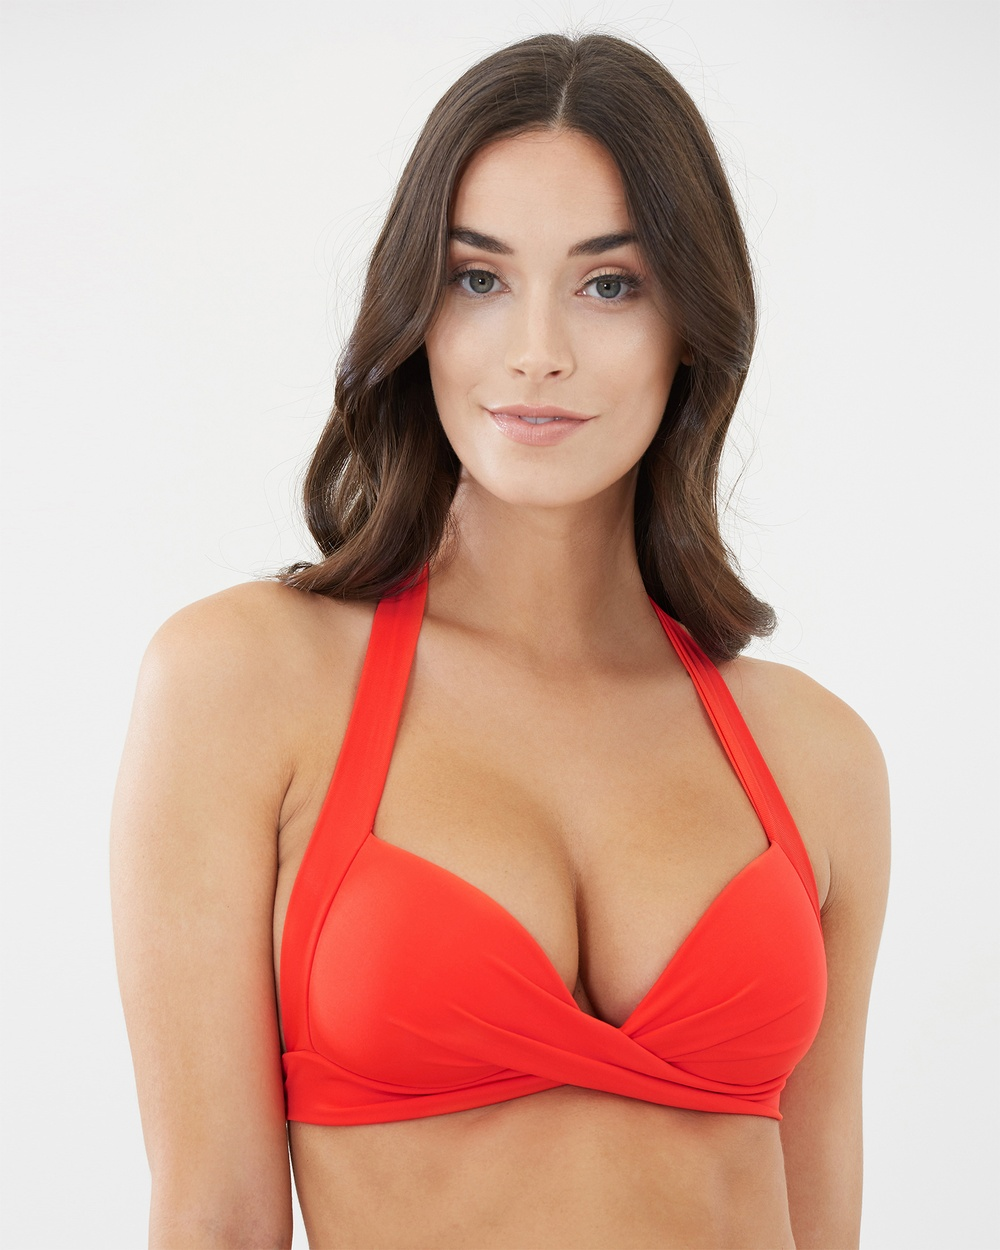 JETS Moulded Top Bikini Tops Multi Moulded Top